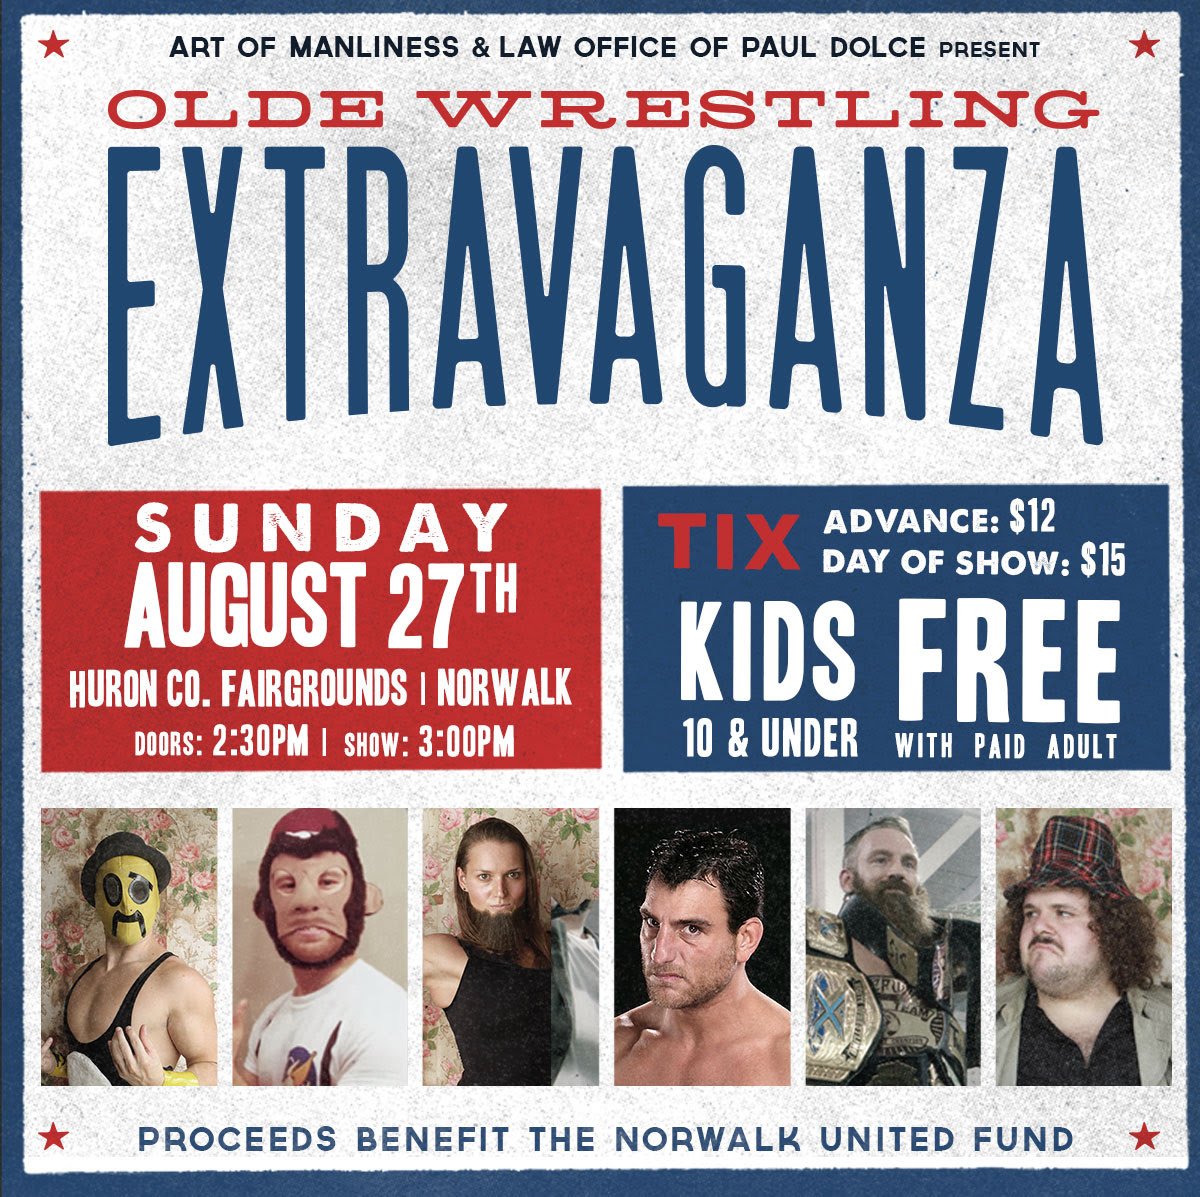 Olde Wrestling's 5th Extravaganza Sunday, August 27th in Norwalk, Oh at the Huron County Fairgrounds | Kids 10 and under Free with Paid Adult | Featuring Jervis Cottonbelly, Space Monkey, The Bearded Lady, Little Guido, Matthew Cross, Dick Justice and more!